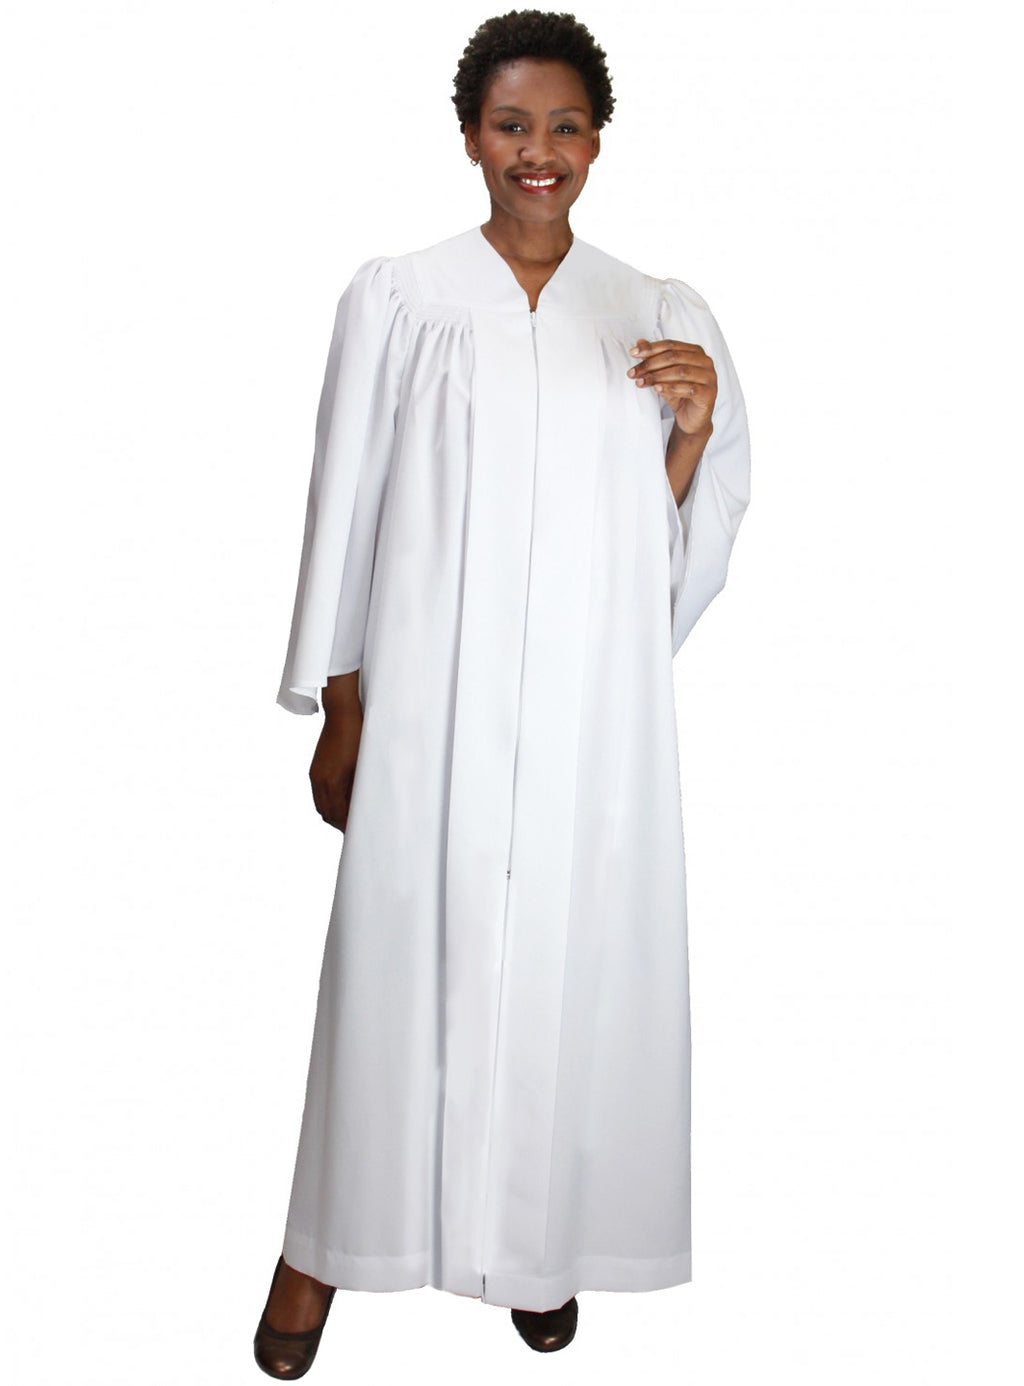 Bat Wing Baptismal & Choir Robe